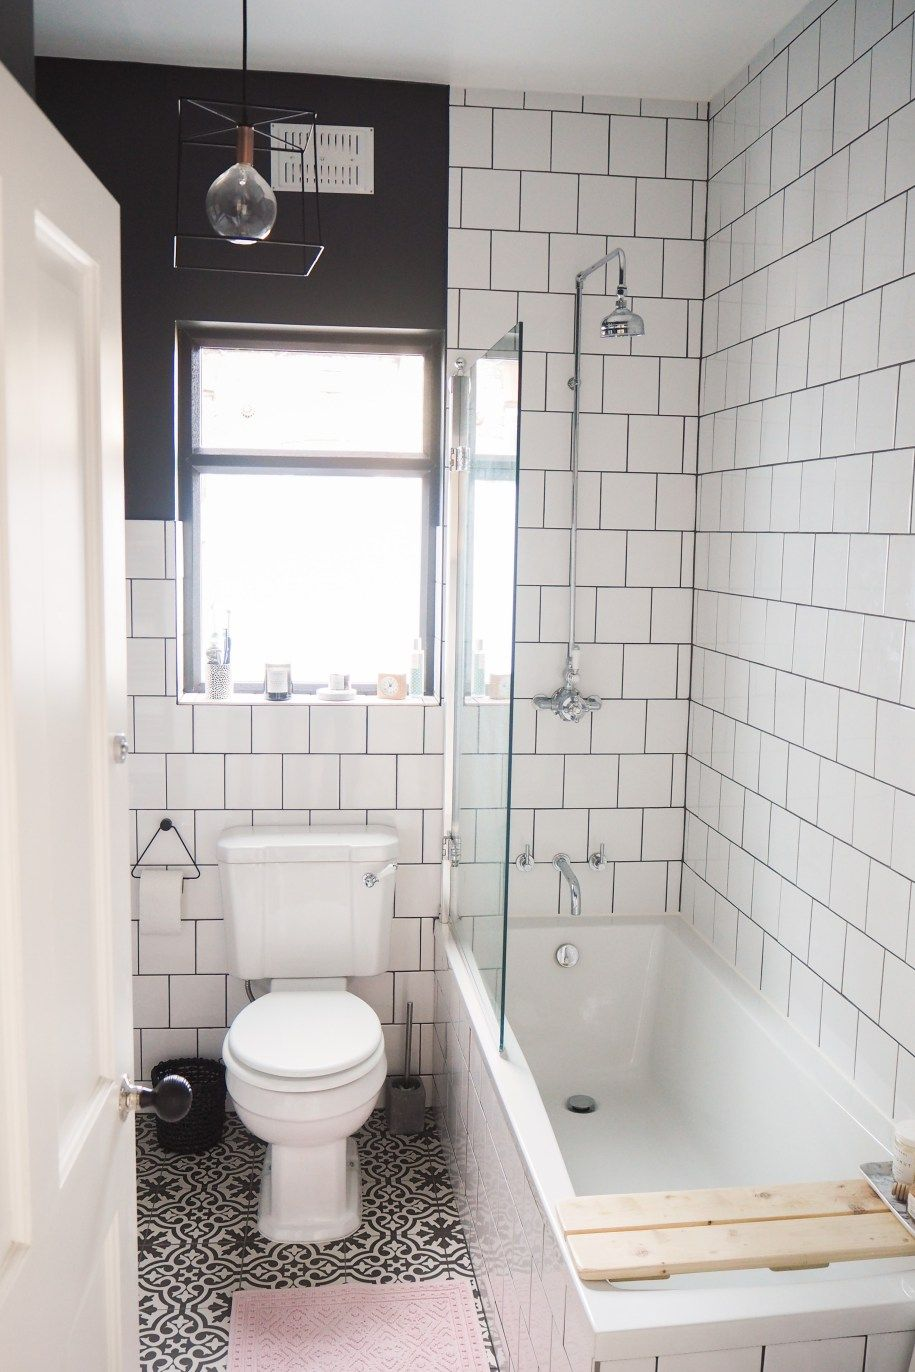 Interiors Update: Bathroom - The Frugality Blog | Showers & Tiles ...